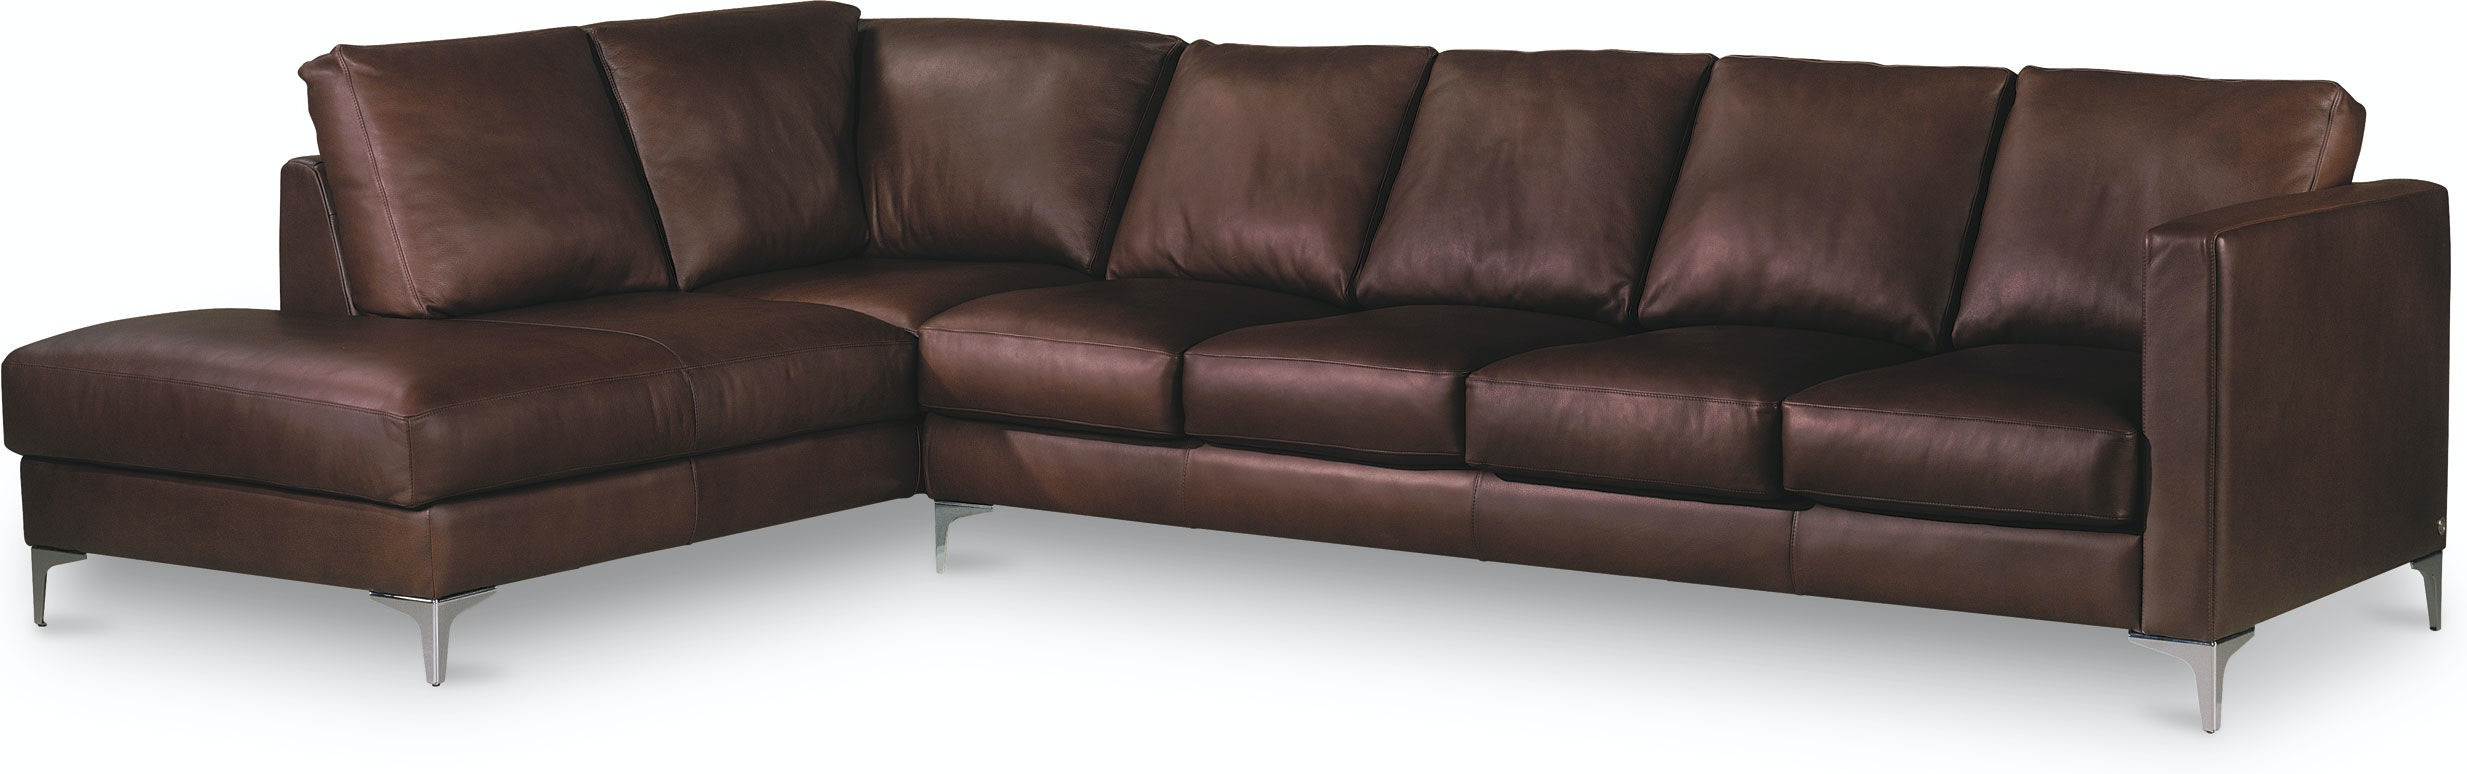 leather sofa cushions made to measure top rated brands four cushion northpark 4 from cellura